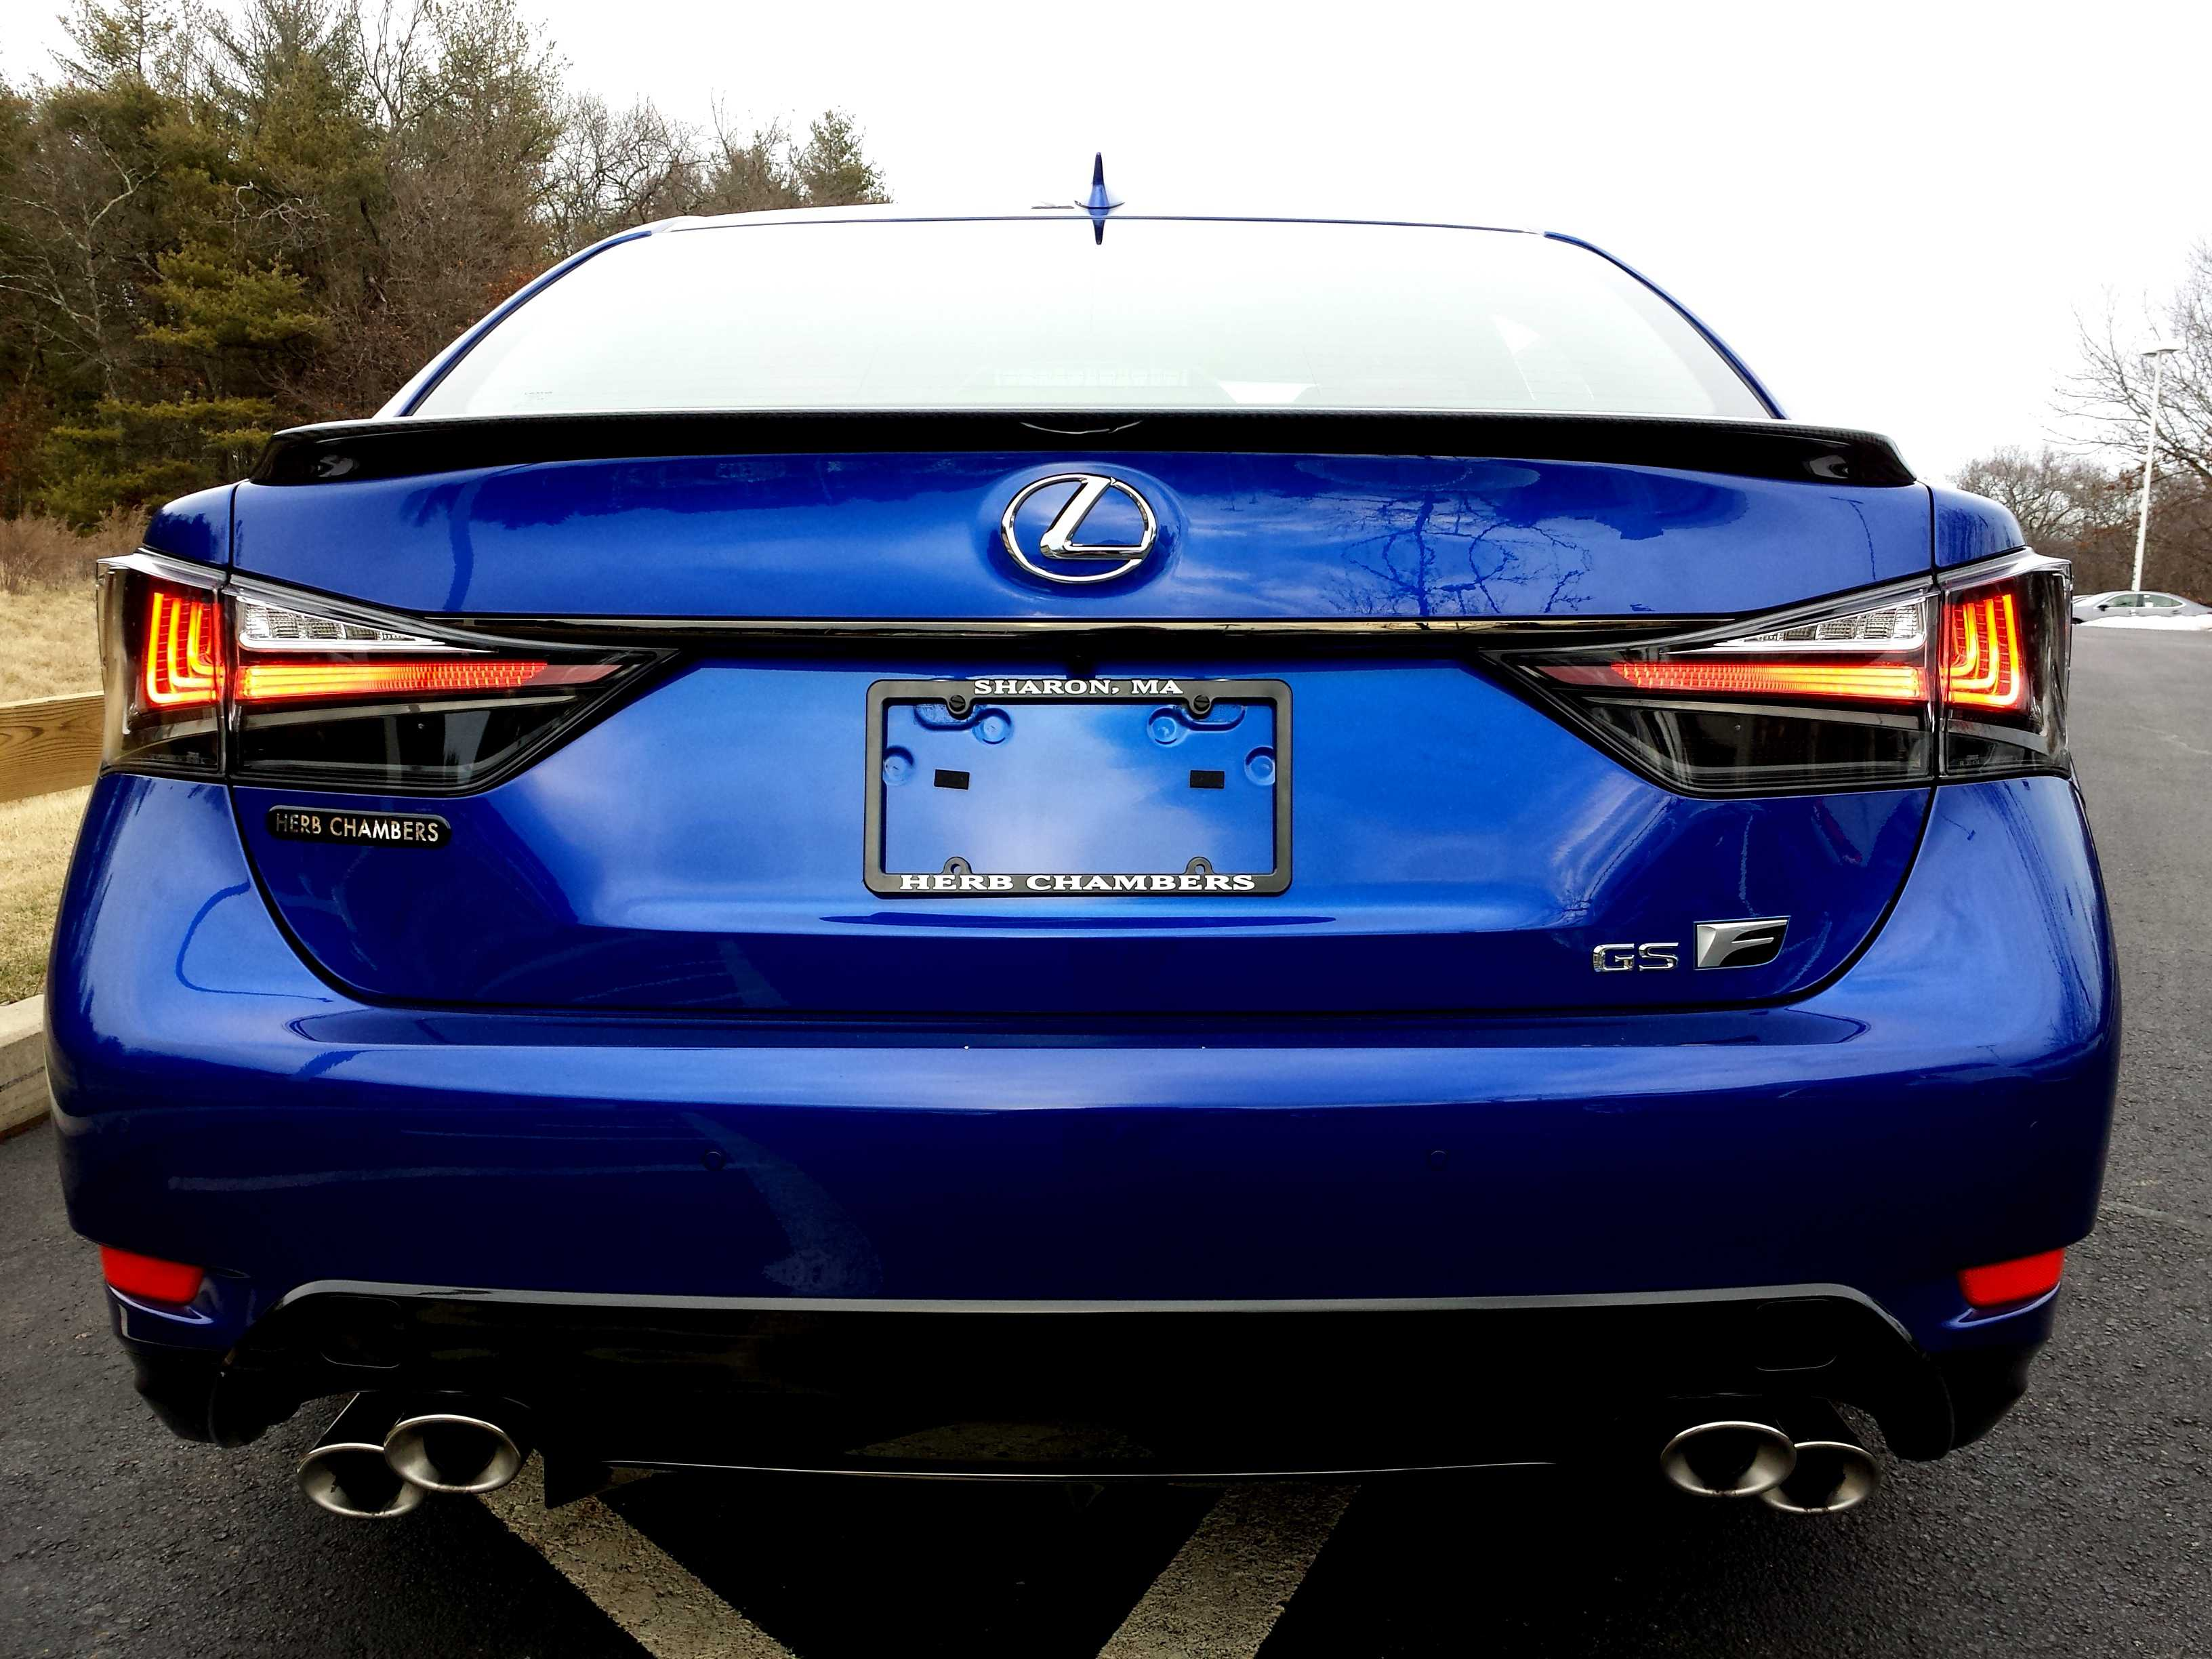 2016 LEXUS GS F for Sale in Hingham MA